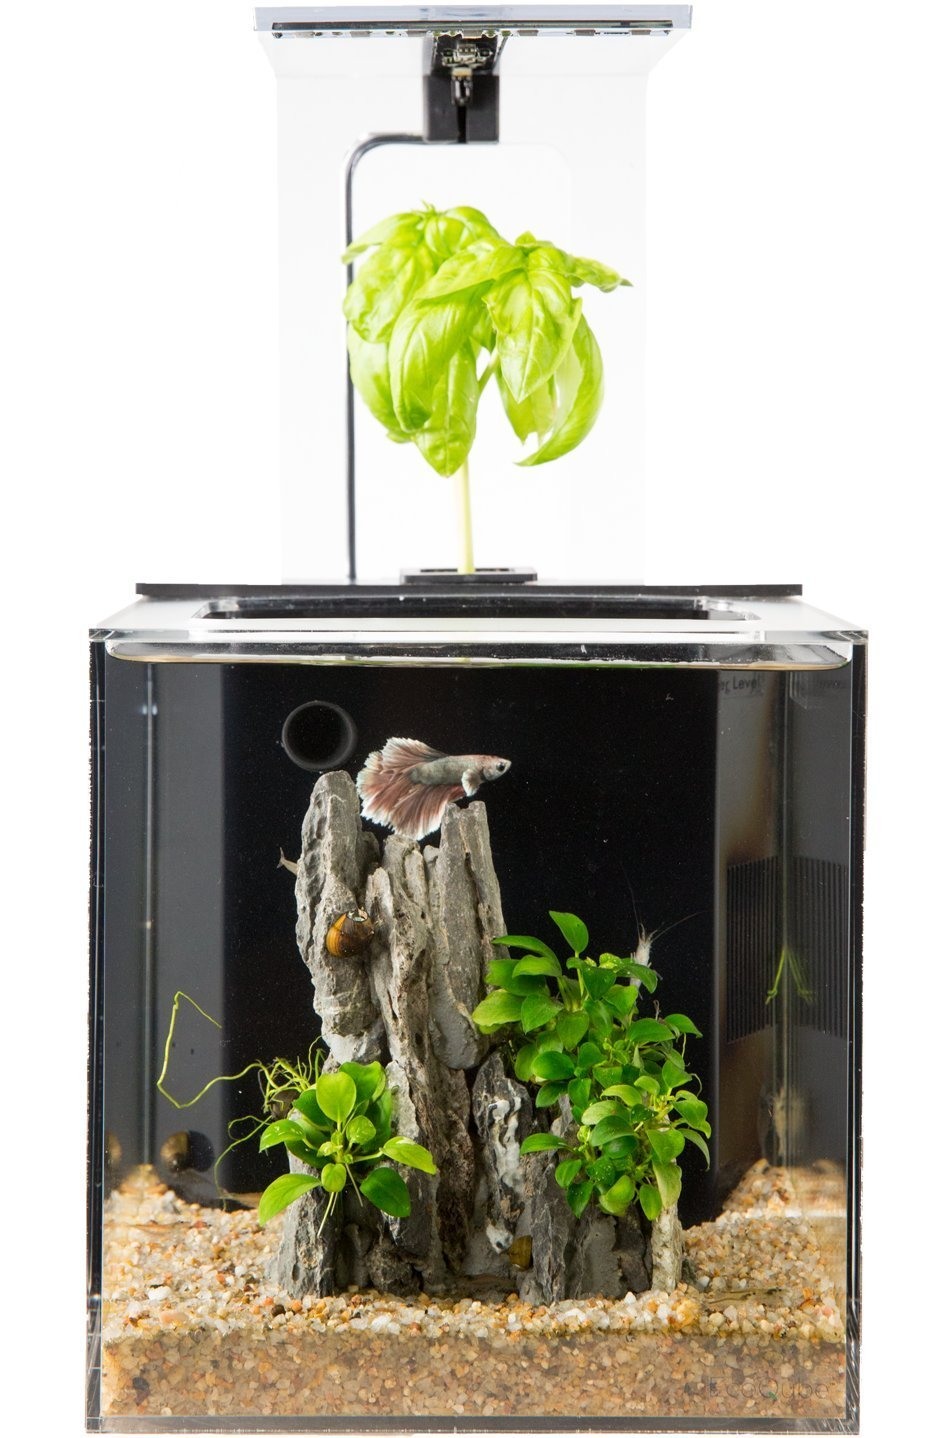 5 of the best betta fish tanks on 2017 for Betta fish tanks amazon